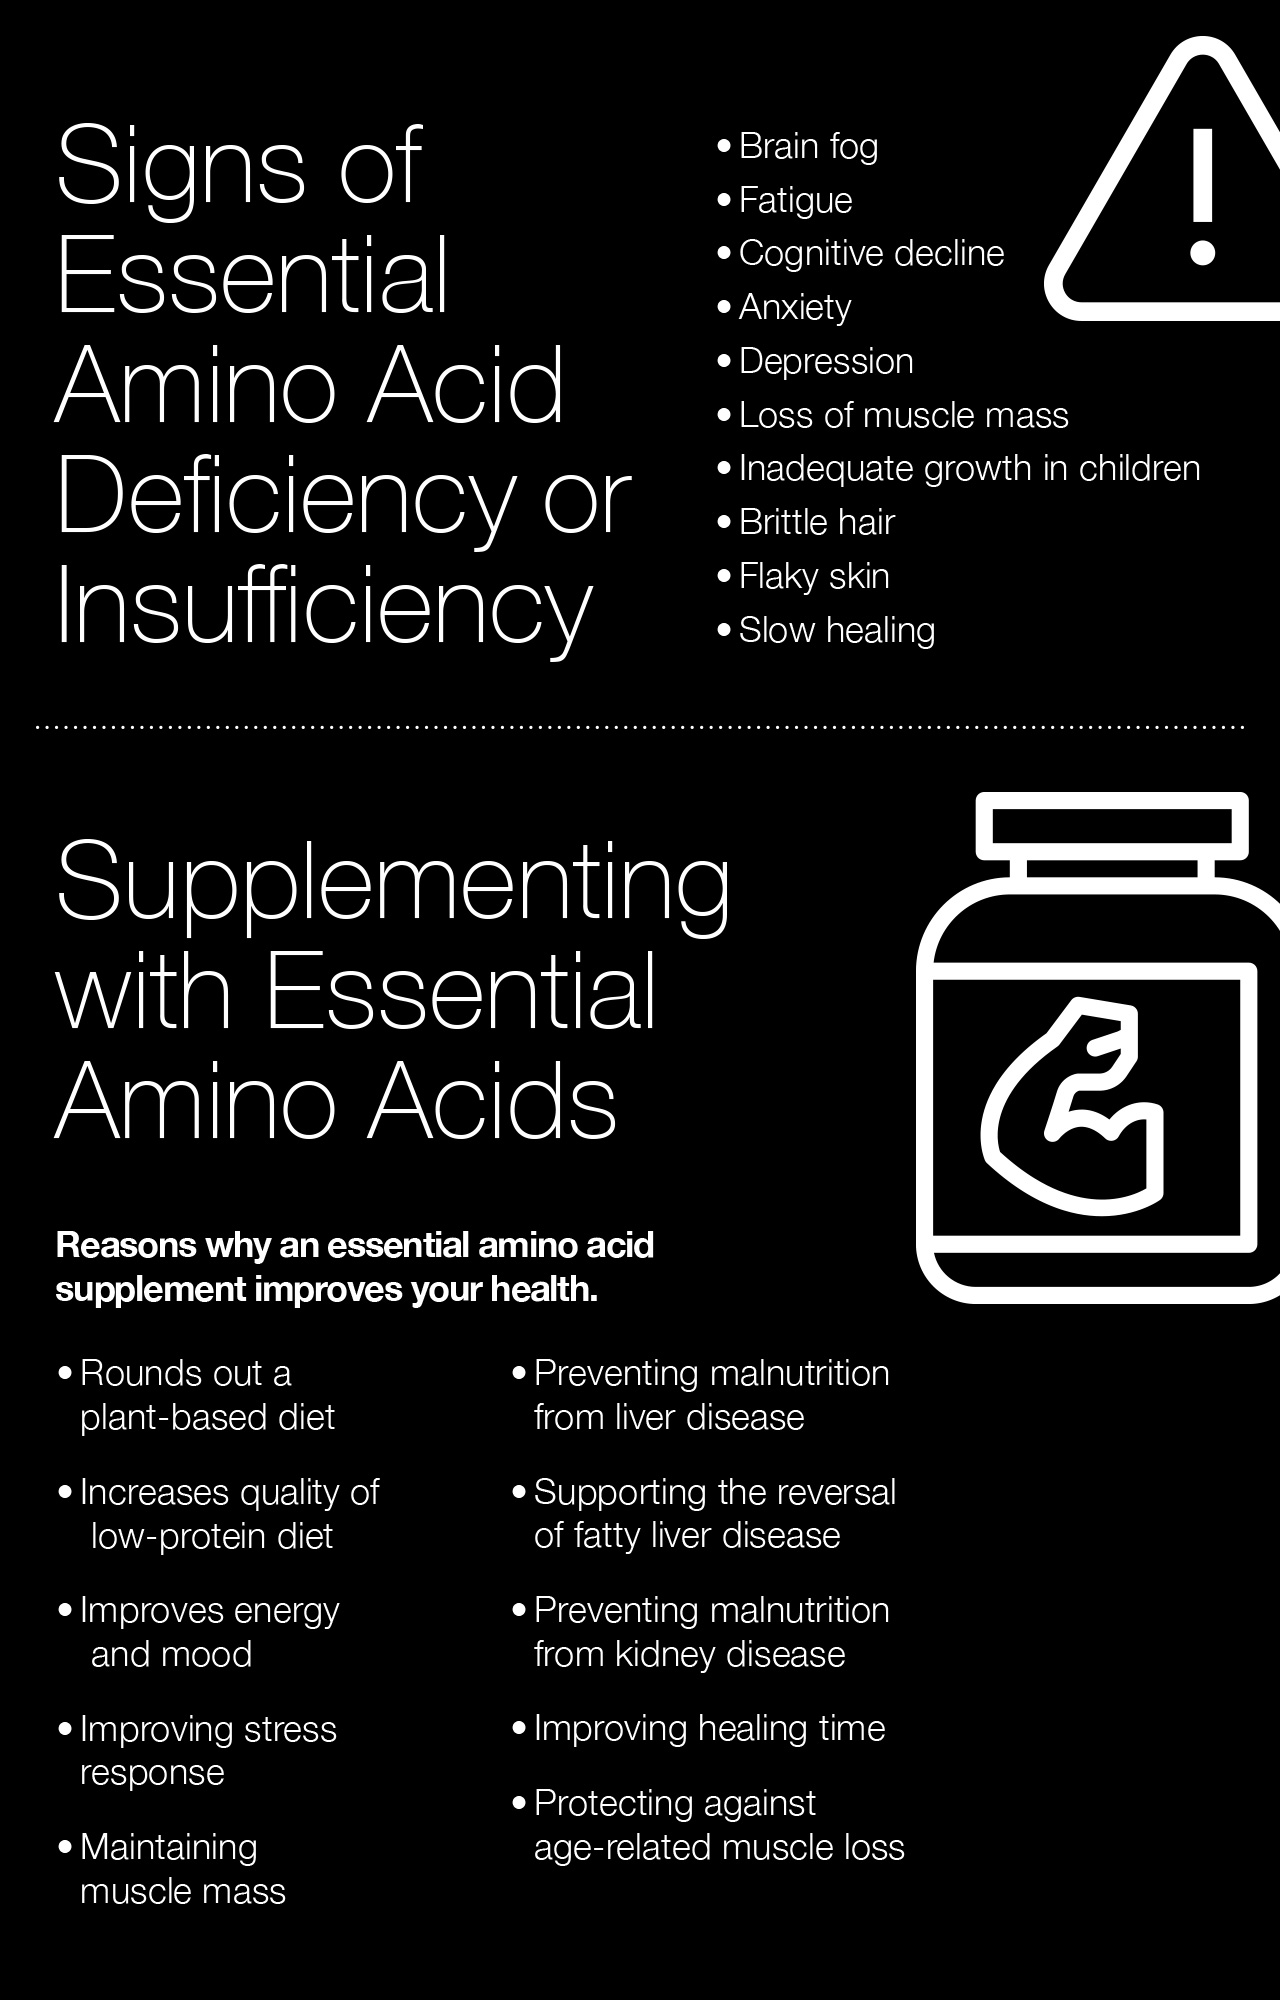 Signs of Essential Amino Acid Deficiency or Insufficiency